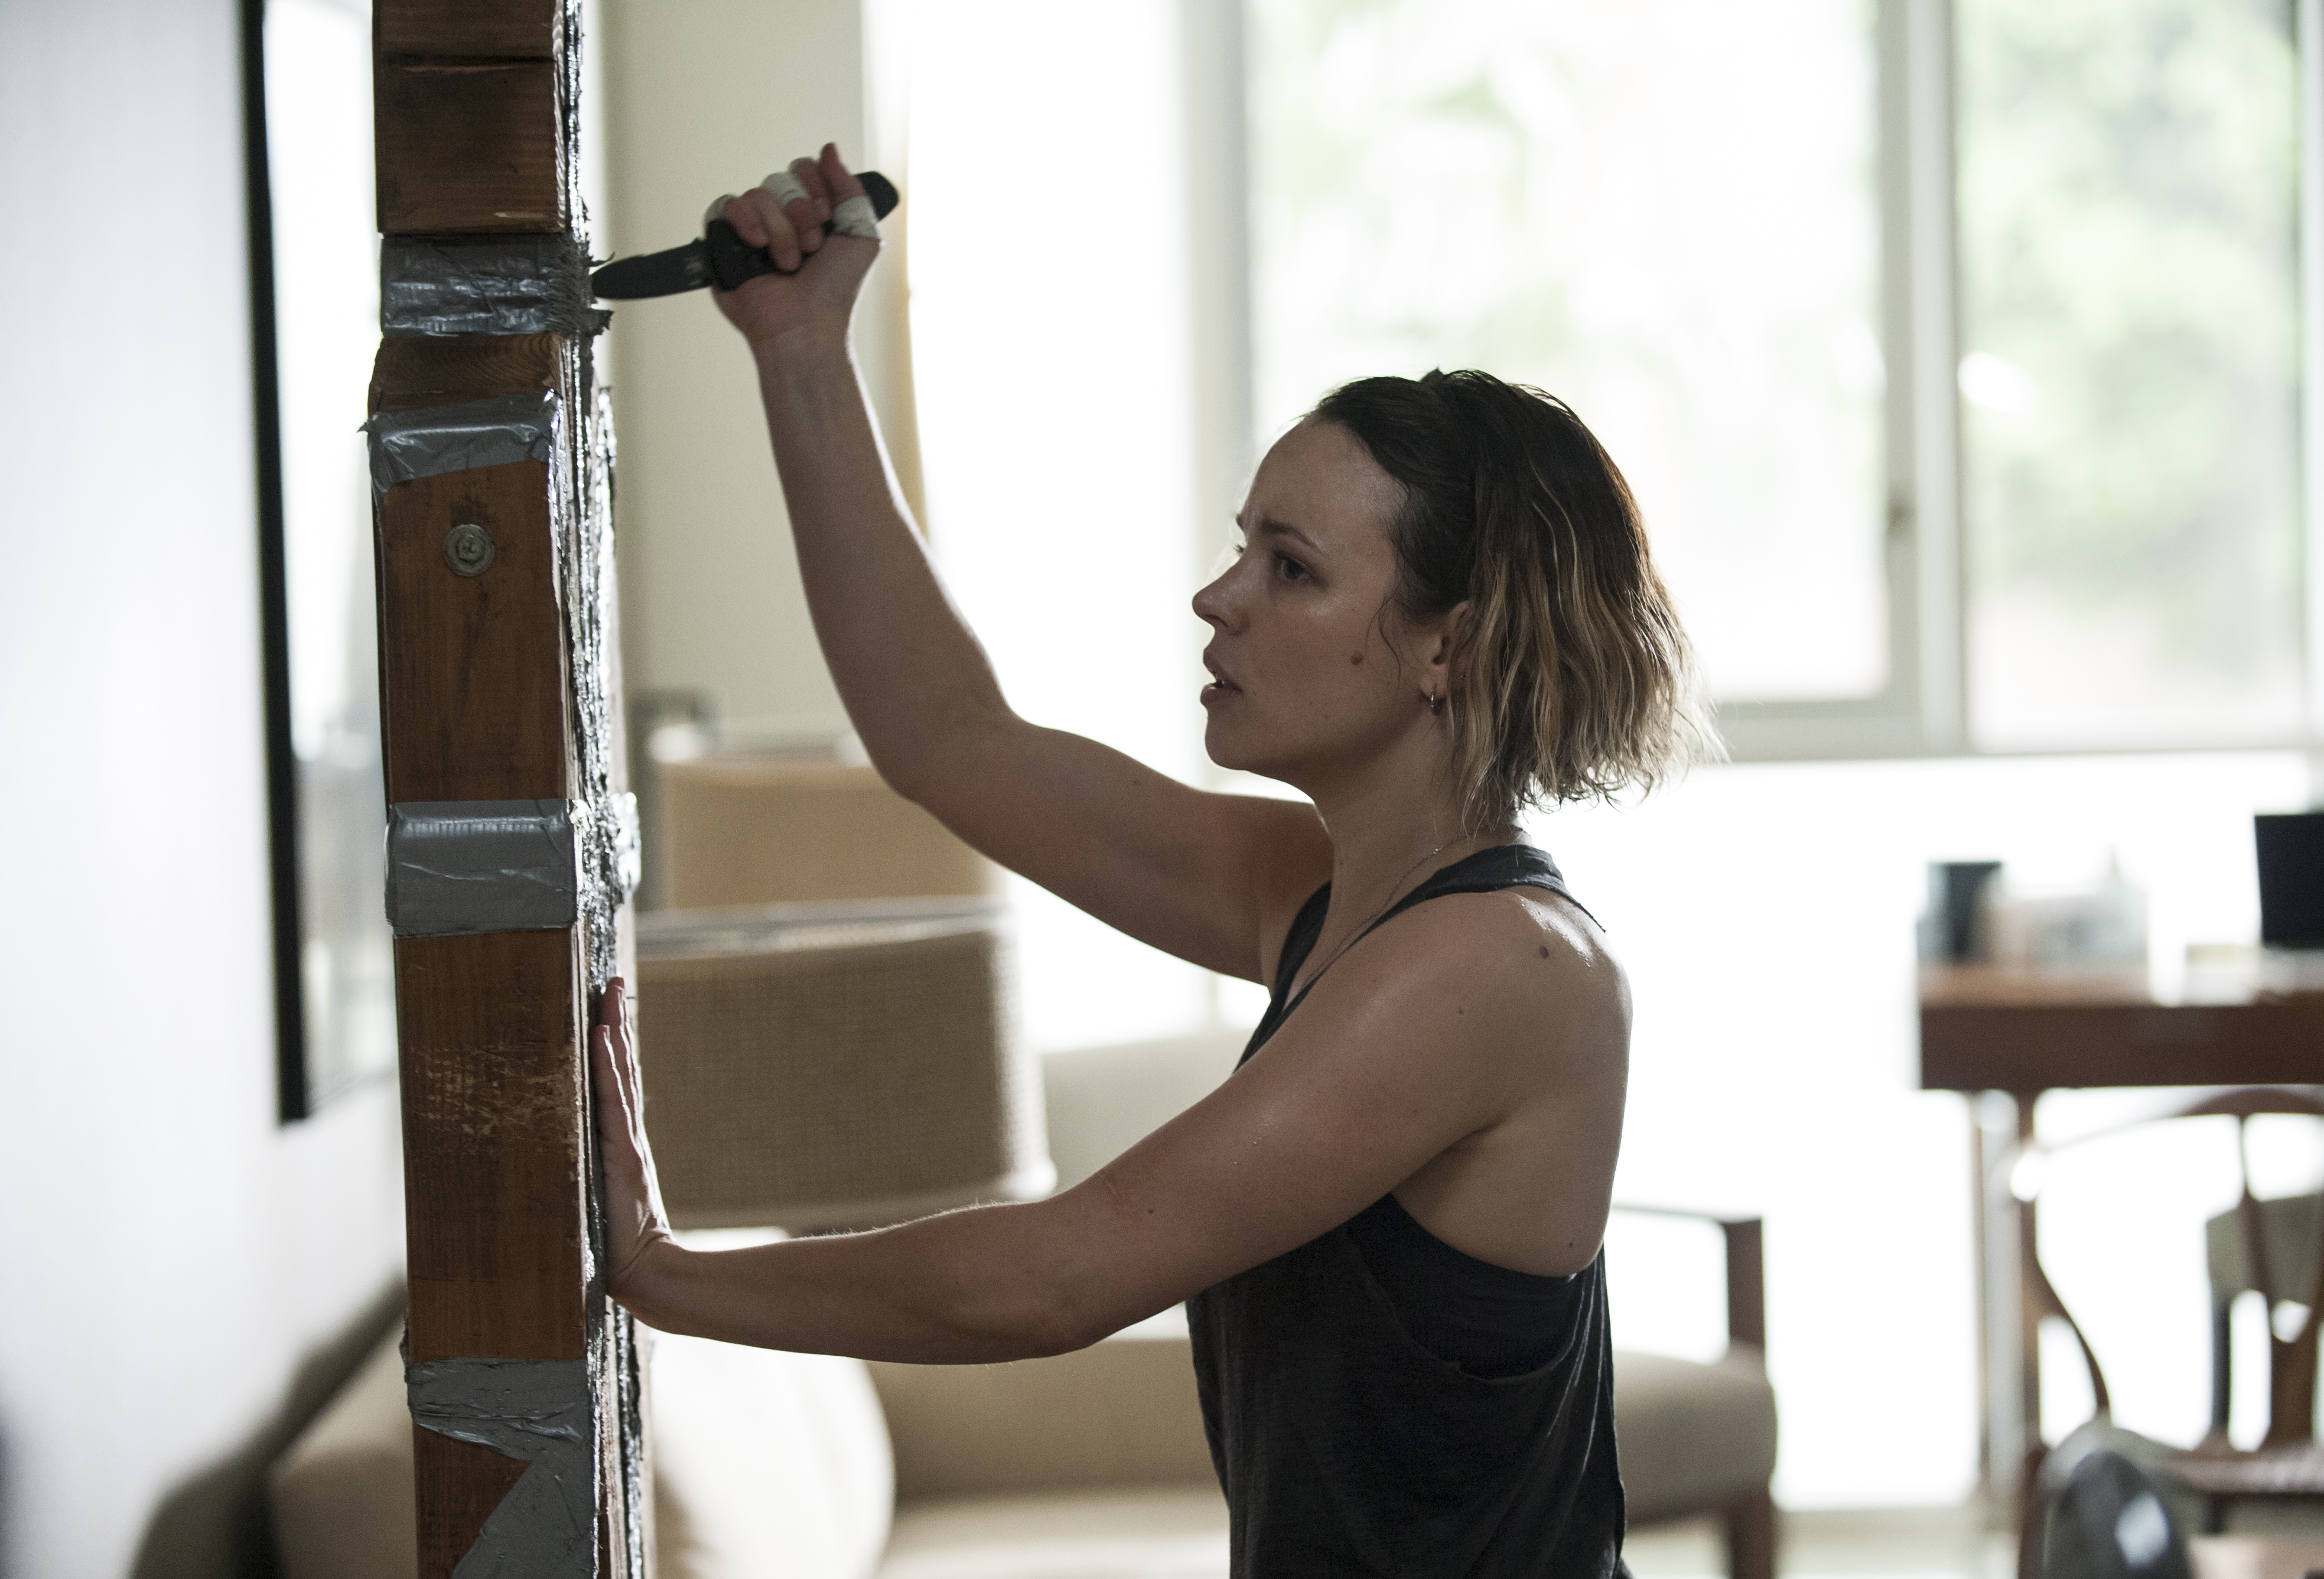 Ani (Rachel McAdams) works on her knife technique before going undercover.